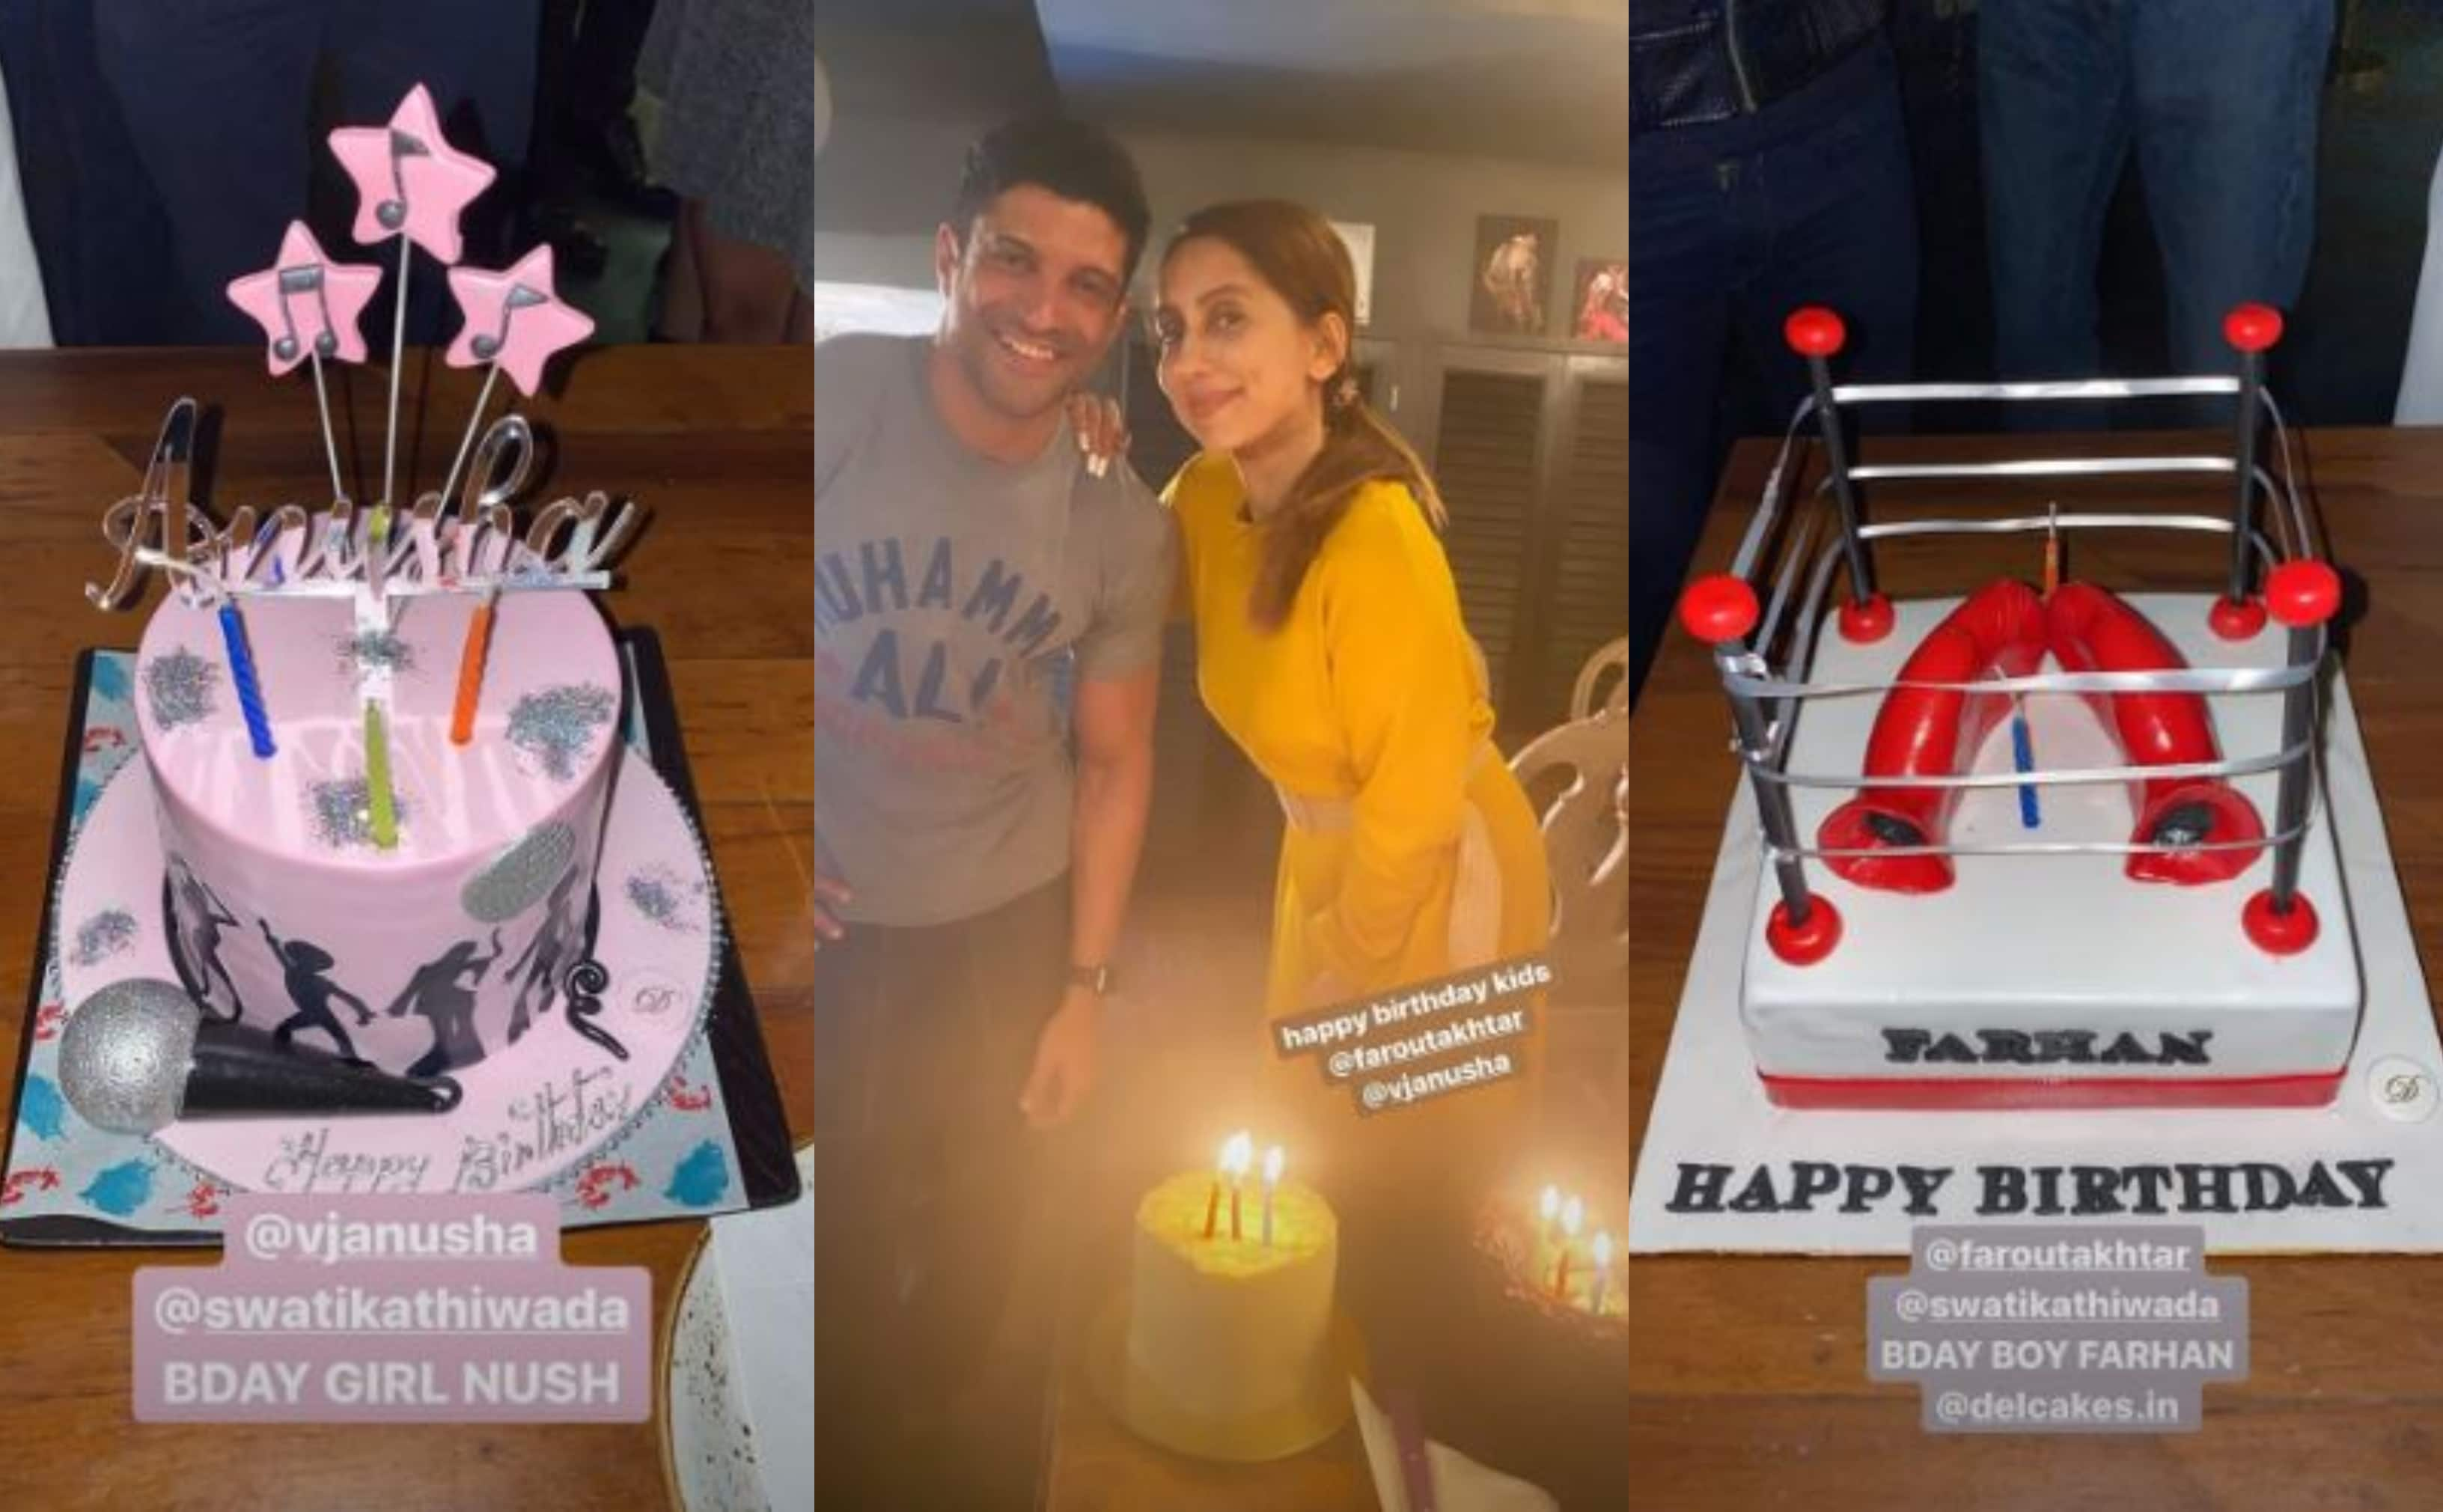 Shibani Dandekar's Romantic Birthday Post For Farhan Akhtar Is All About Late Night Walks With Jim Jam To Sessions In The Ring